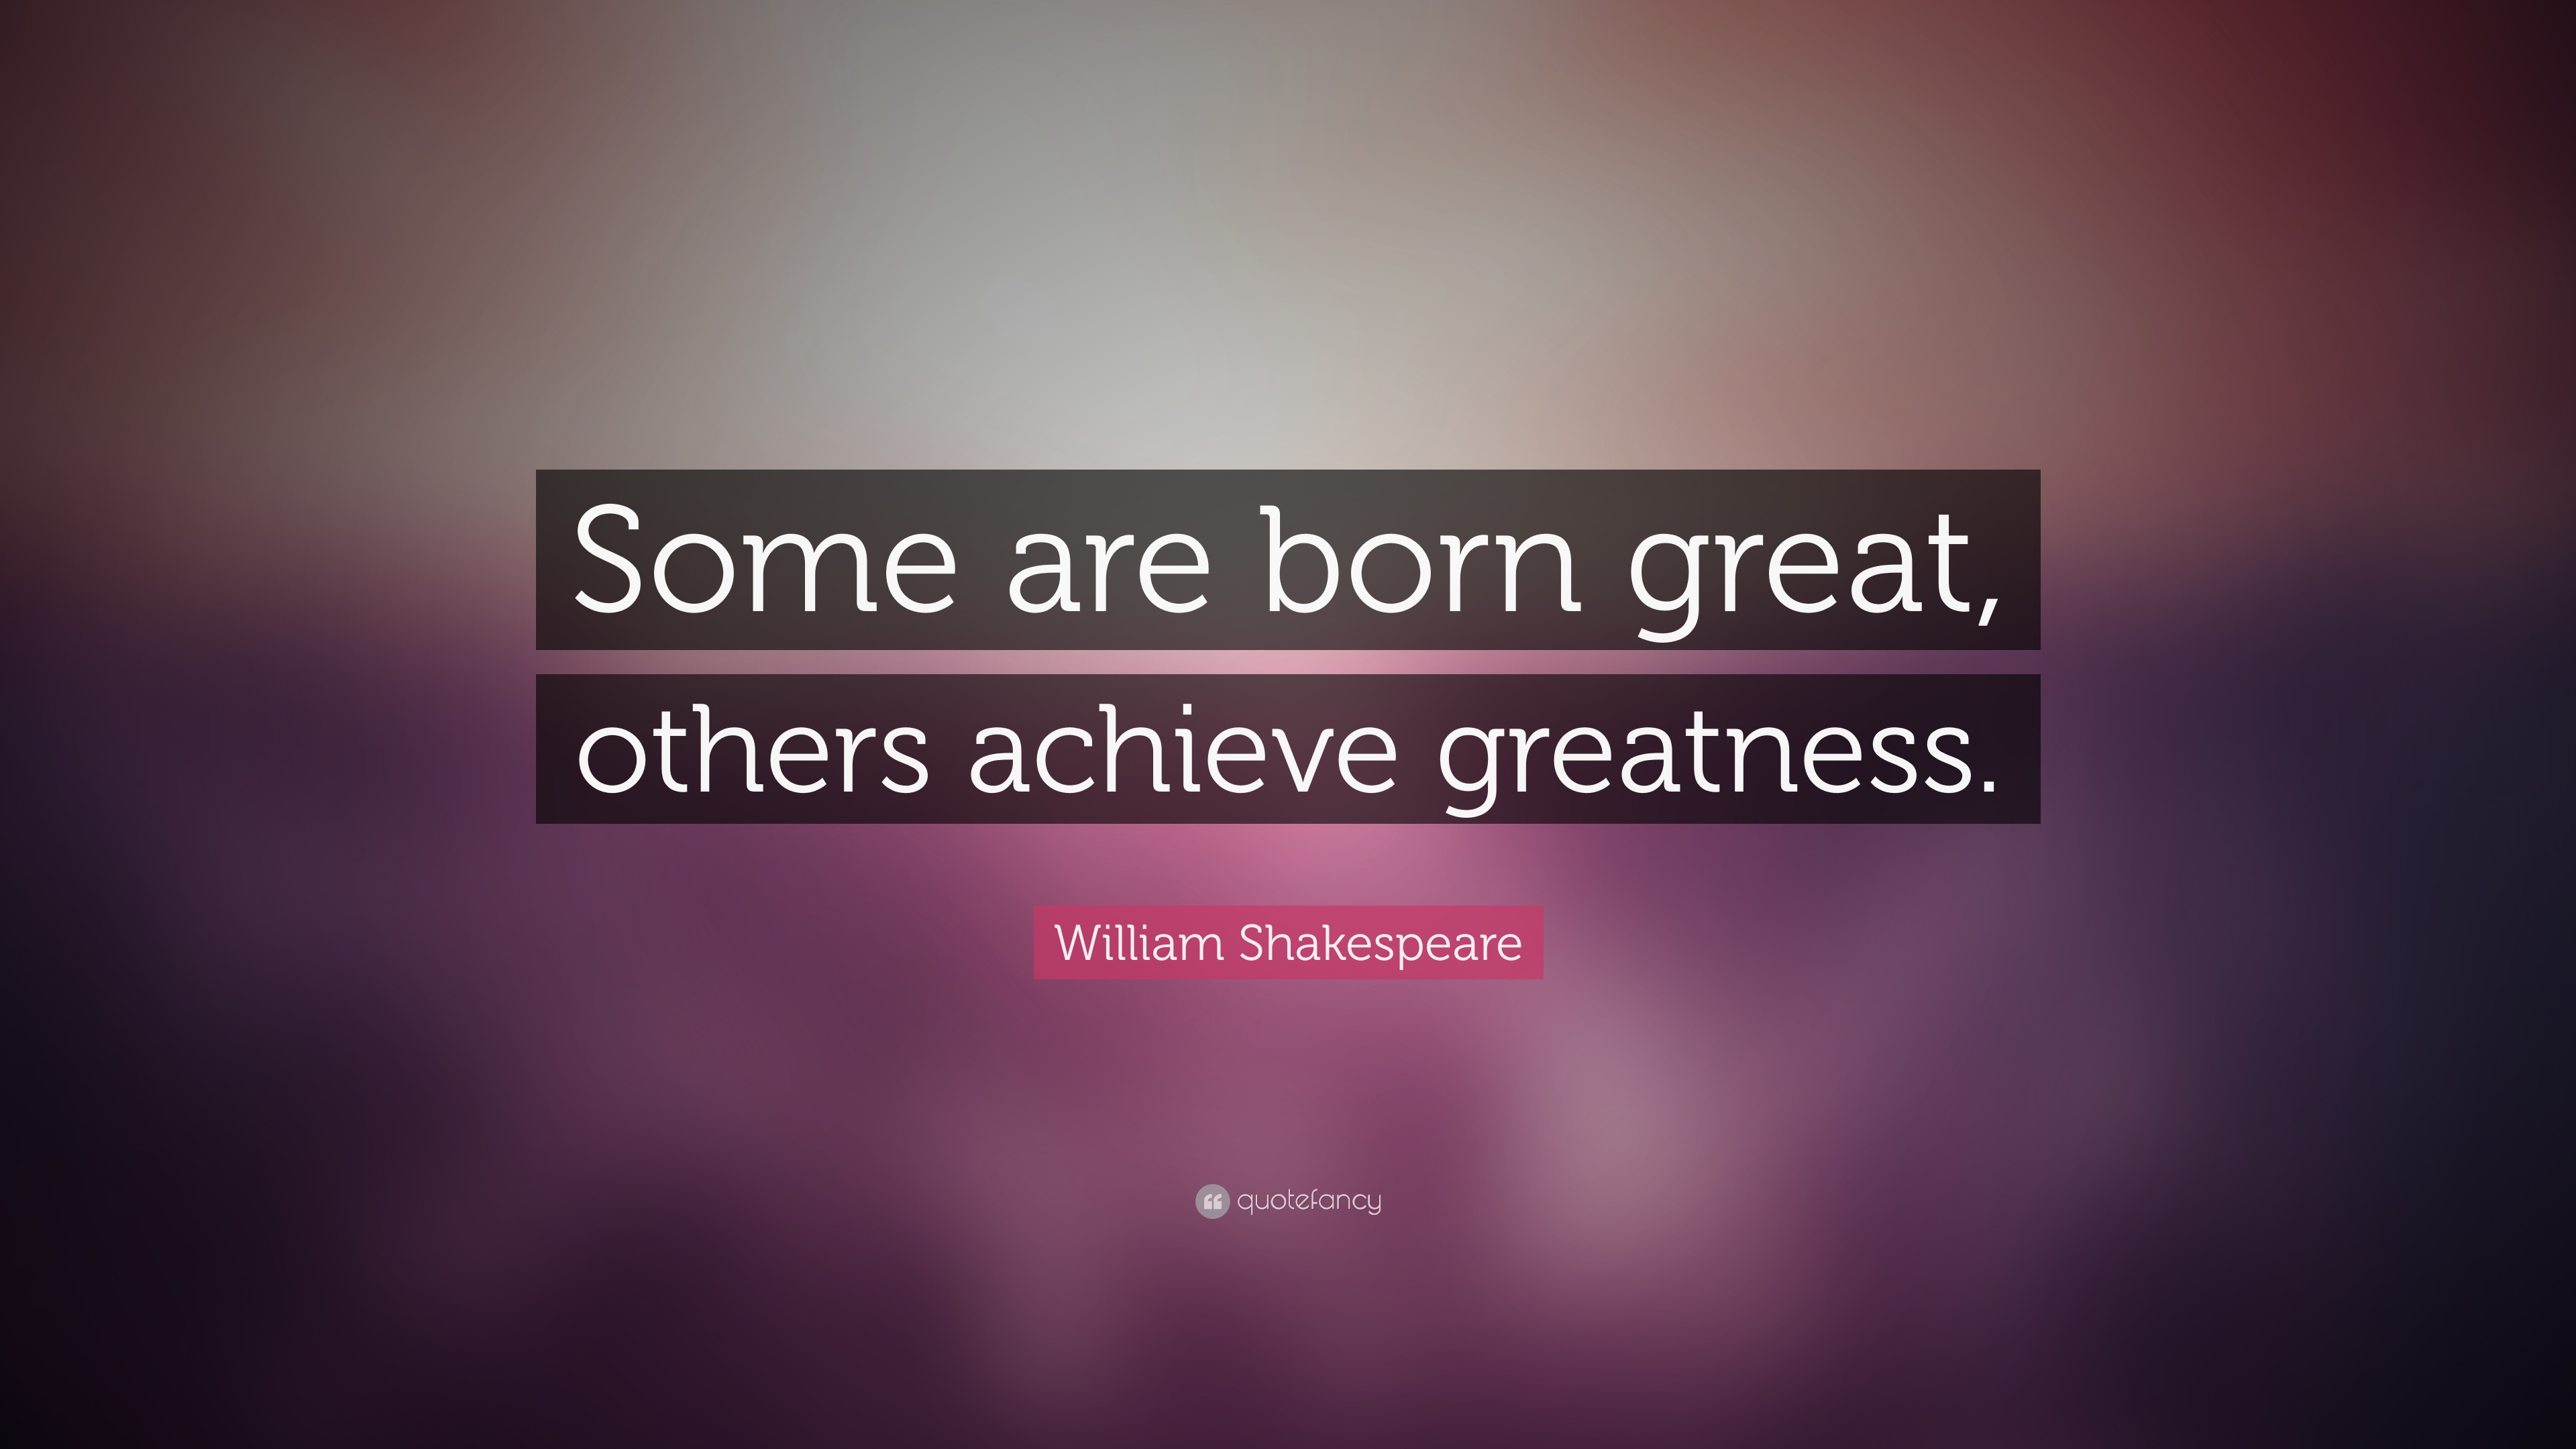 """shakespeares greatness Two theories have been offered to explain about william shakespeare's greatness as playwright first """"all came from within"""" and that we owe his plays to the."""